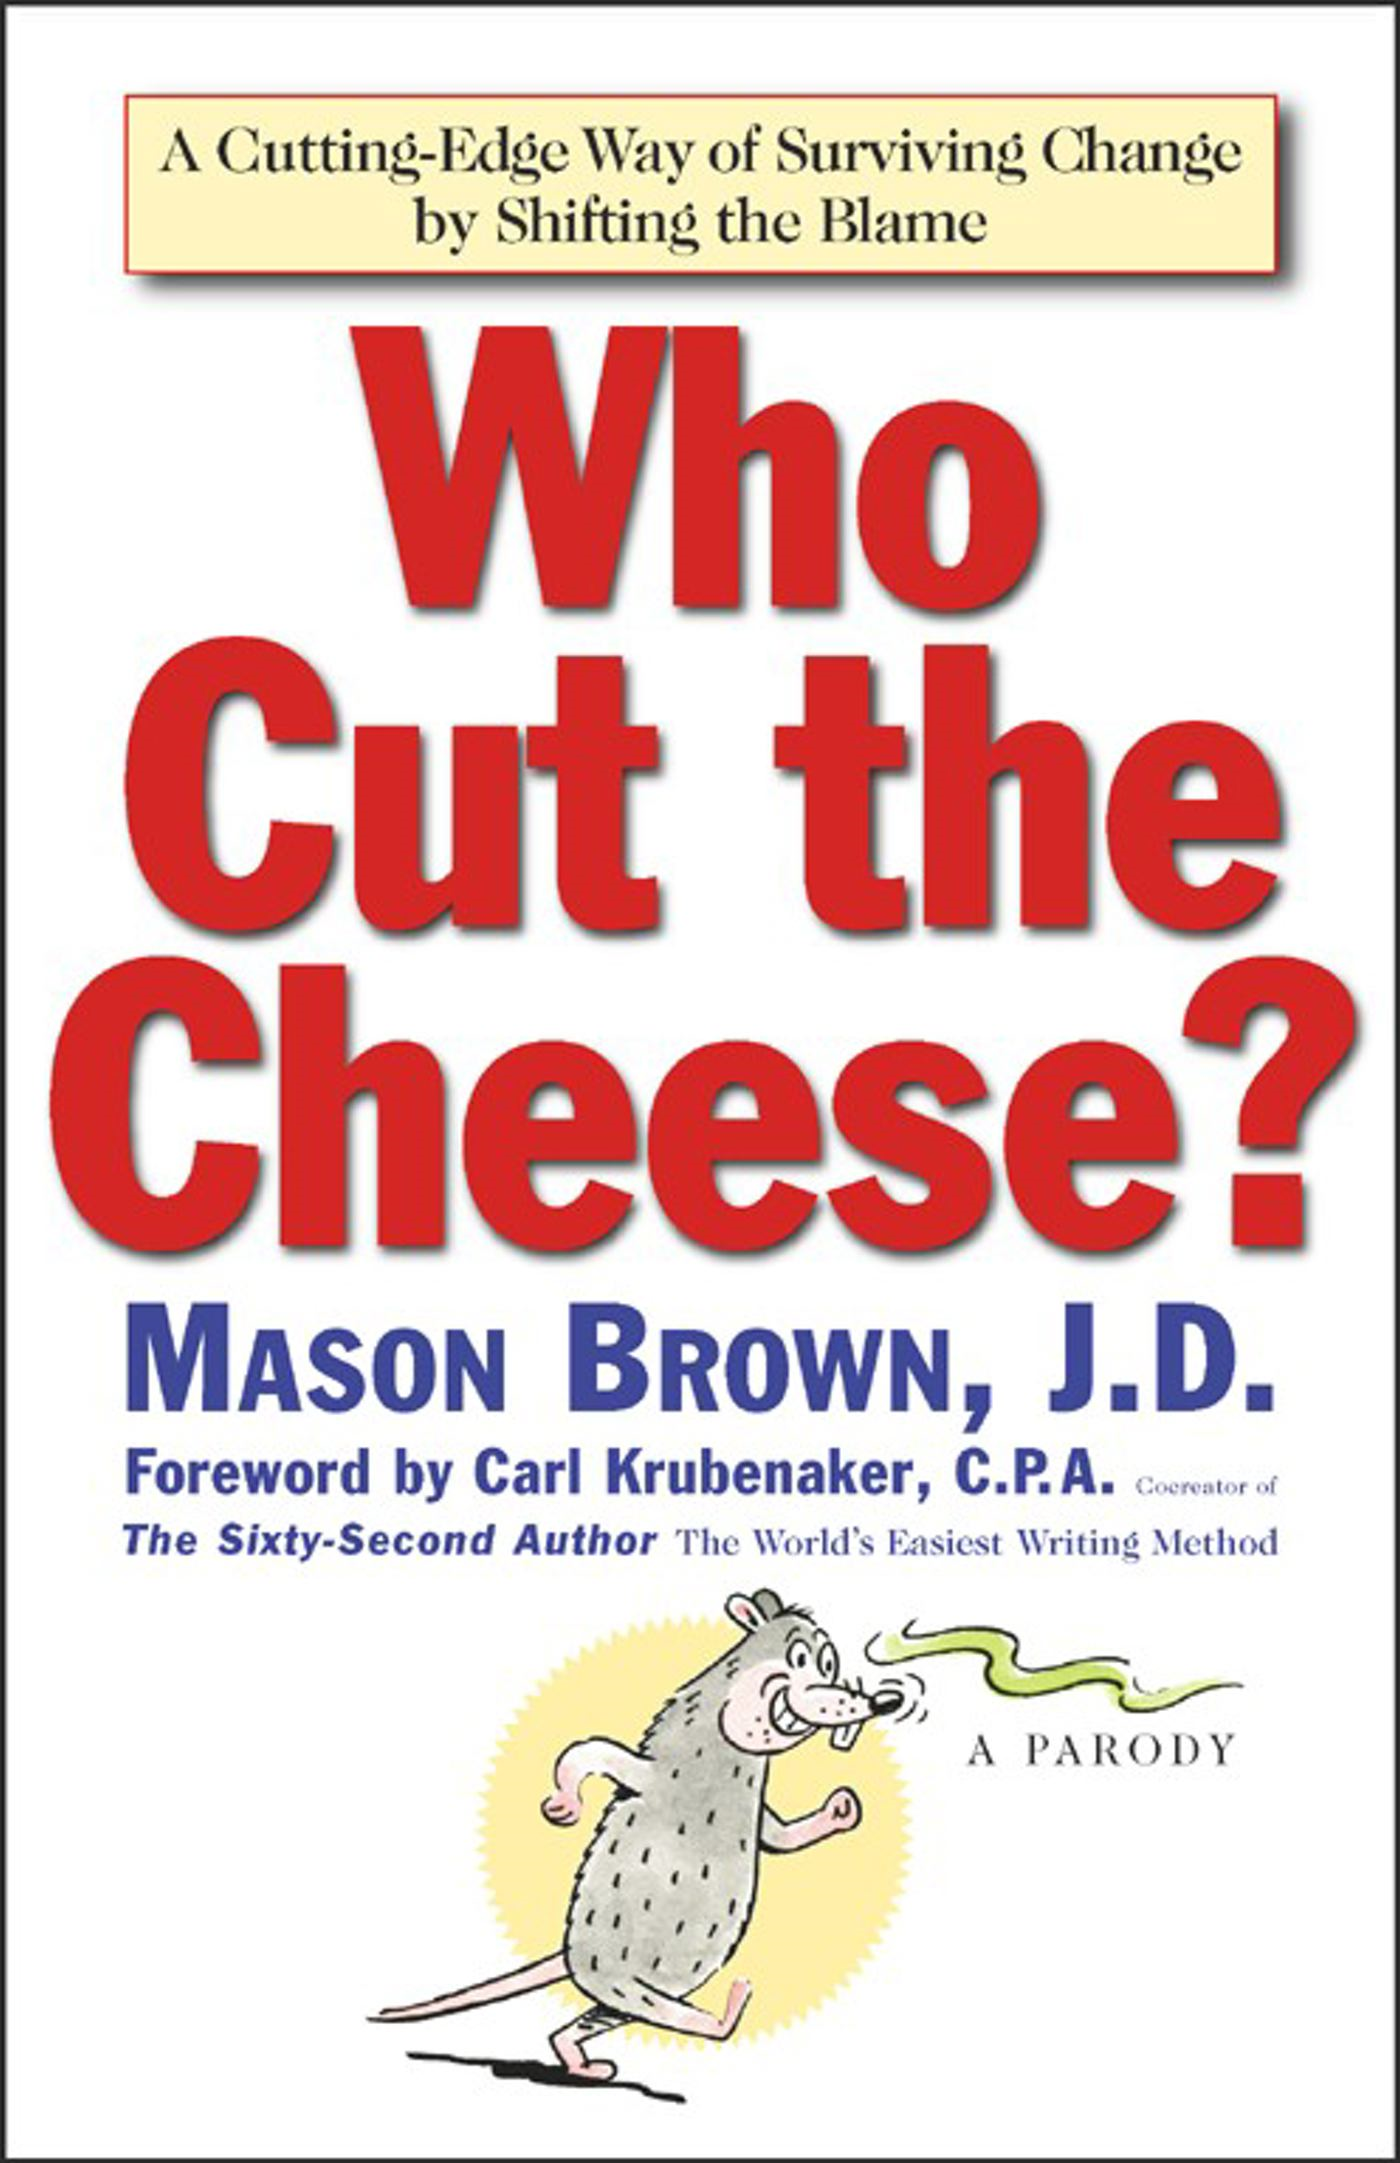 Mason Brown - Who Cut The Cheese?